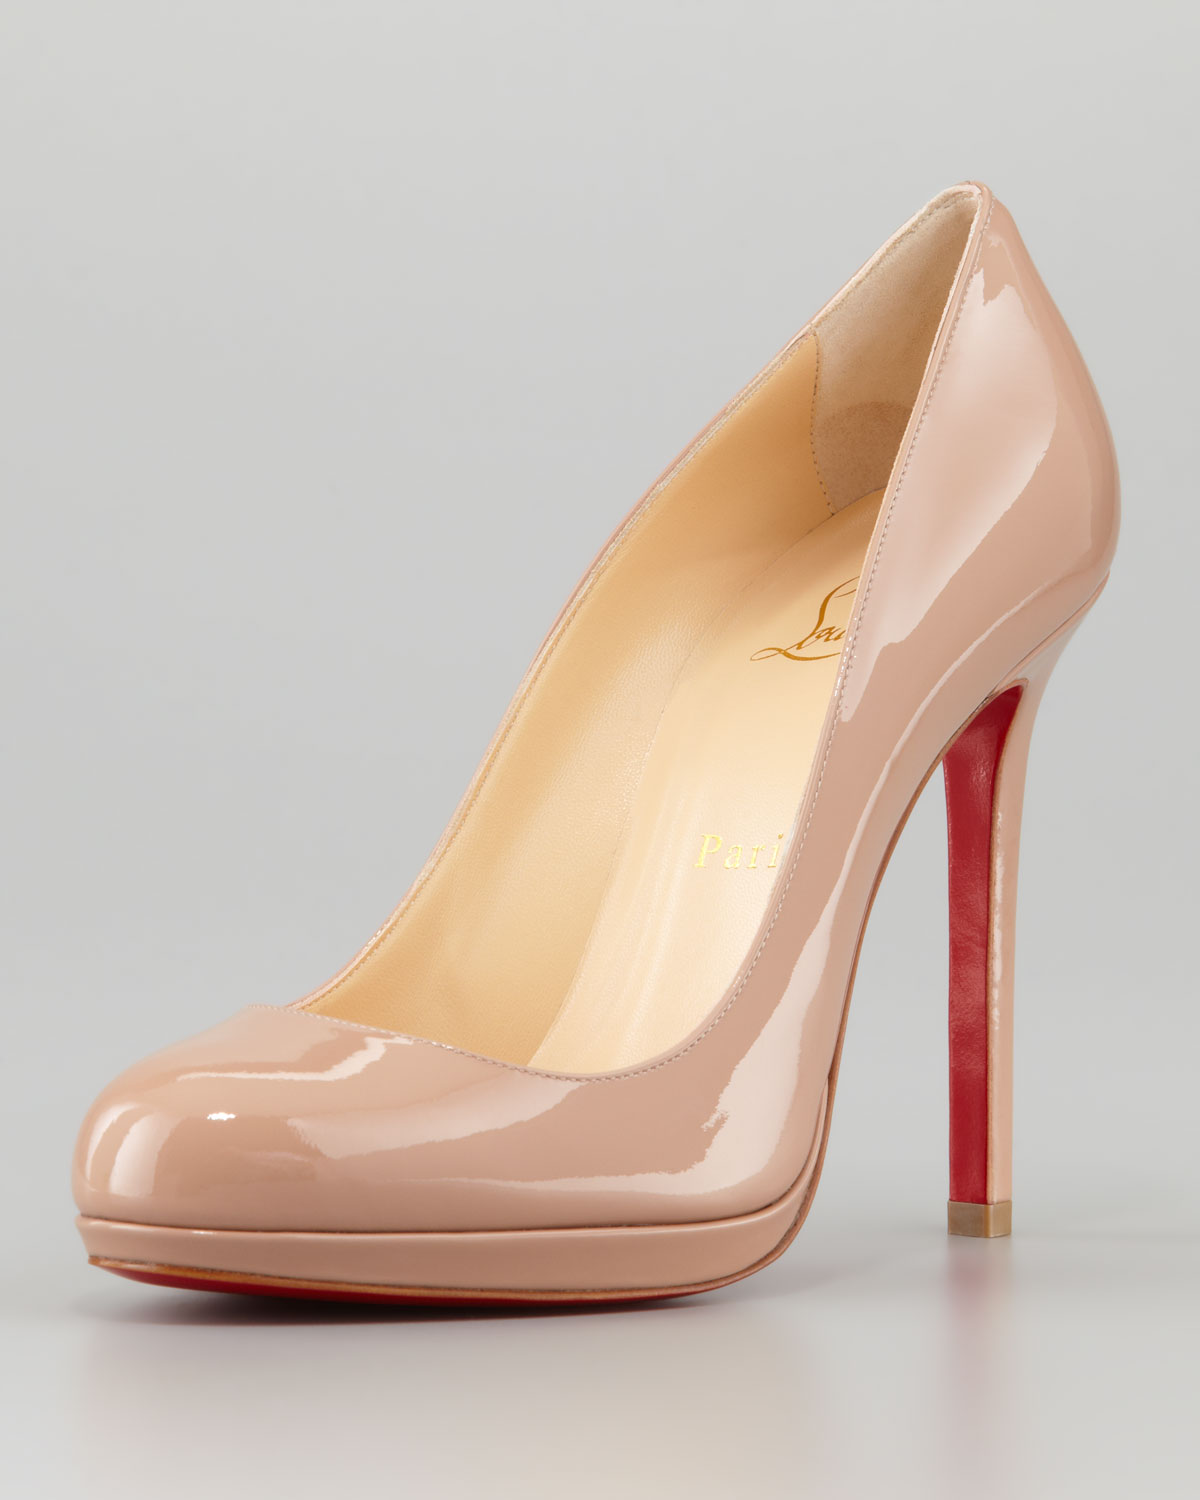 697a2e4a5be Lyst - Christian Louboutin Neofilo Patent Roundtoe Red Sole Pump ...